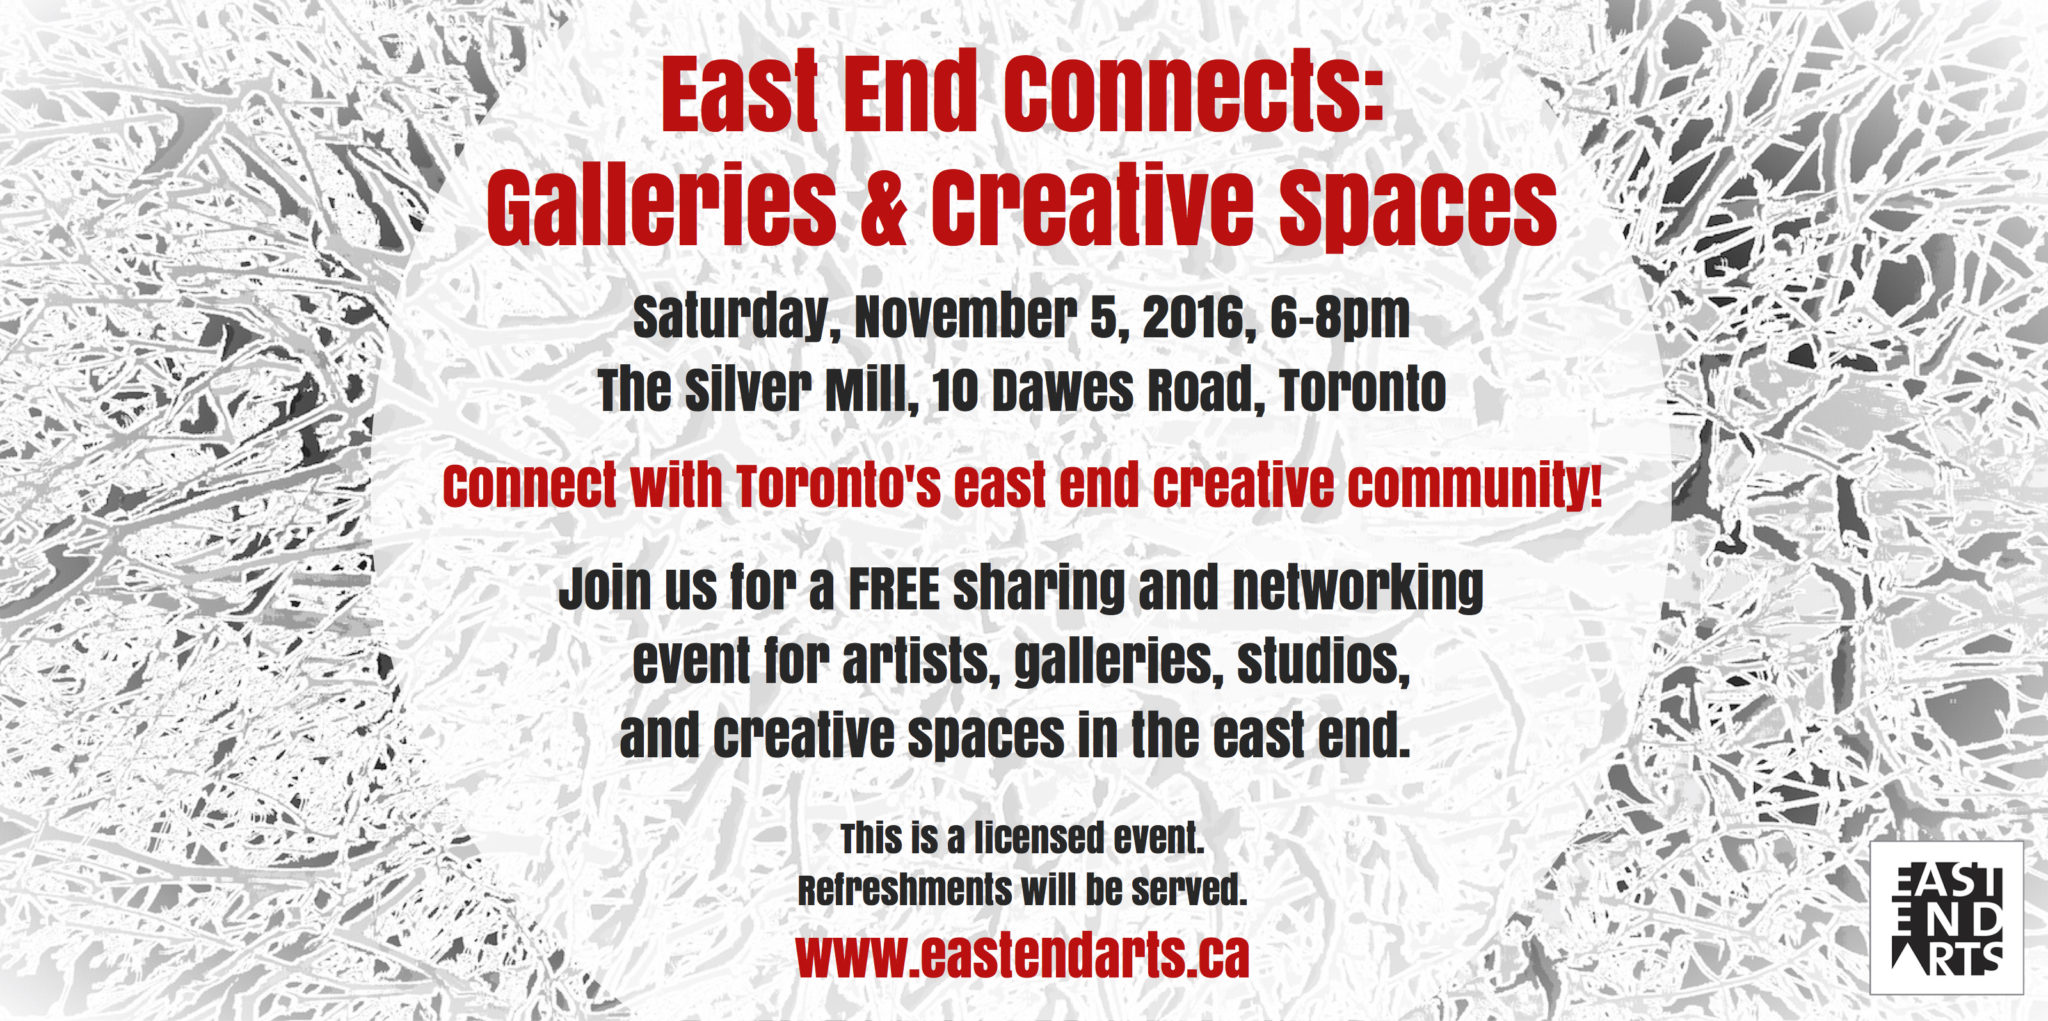 east-end-connects_galleries-creative-spaces_nov-5